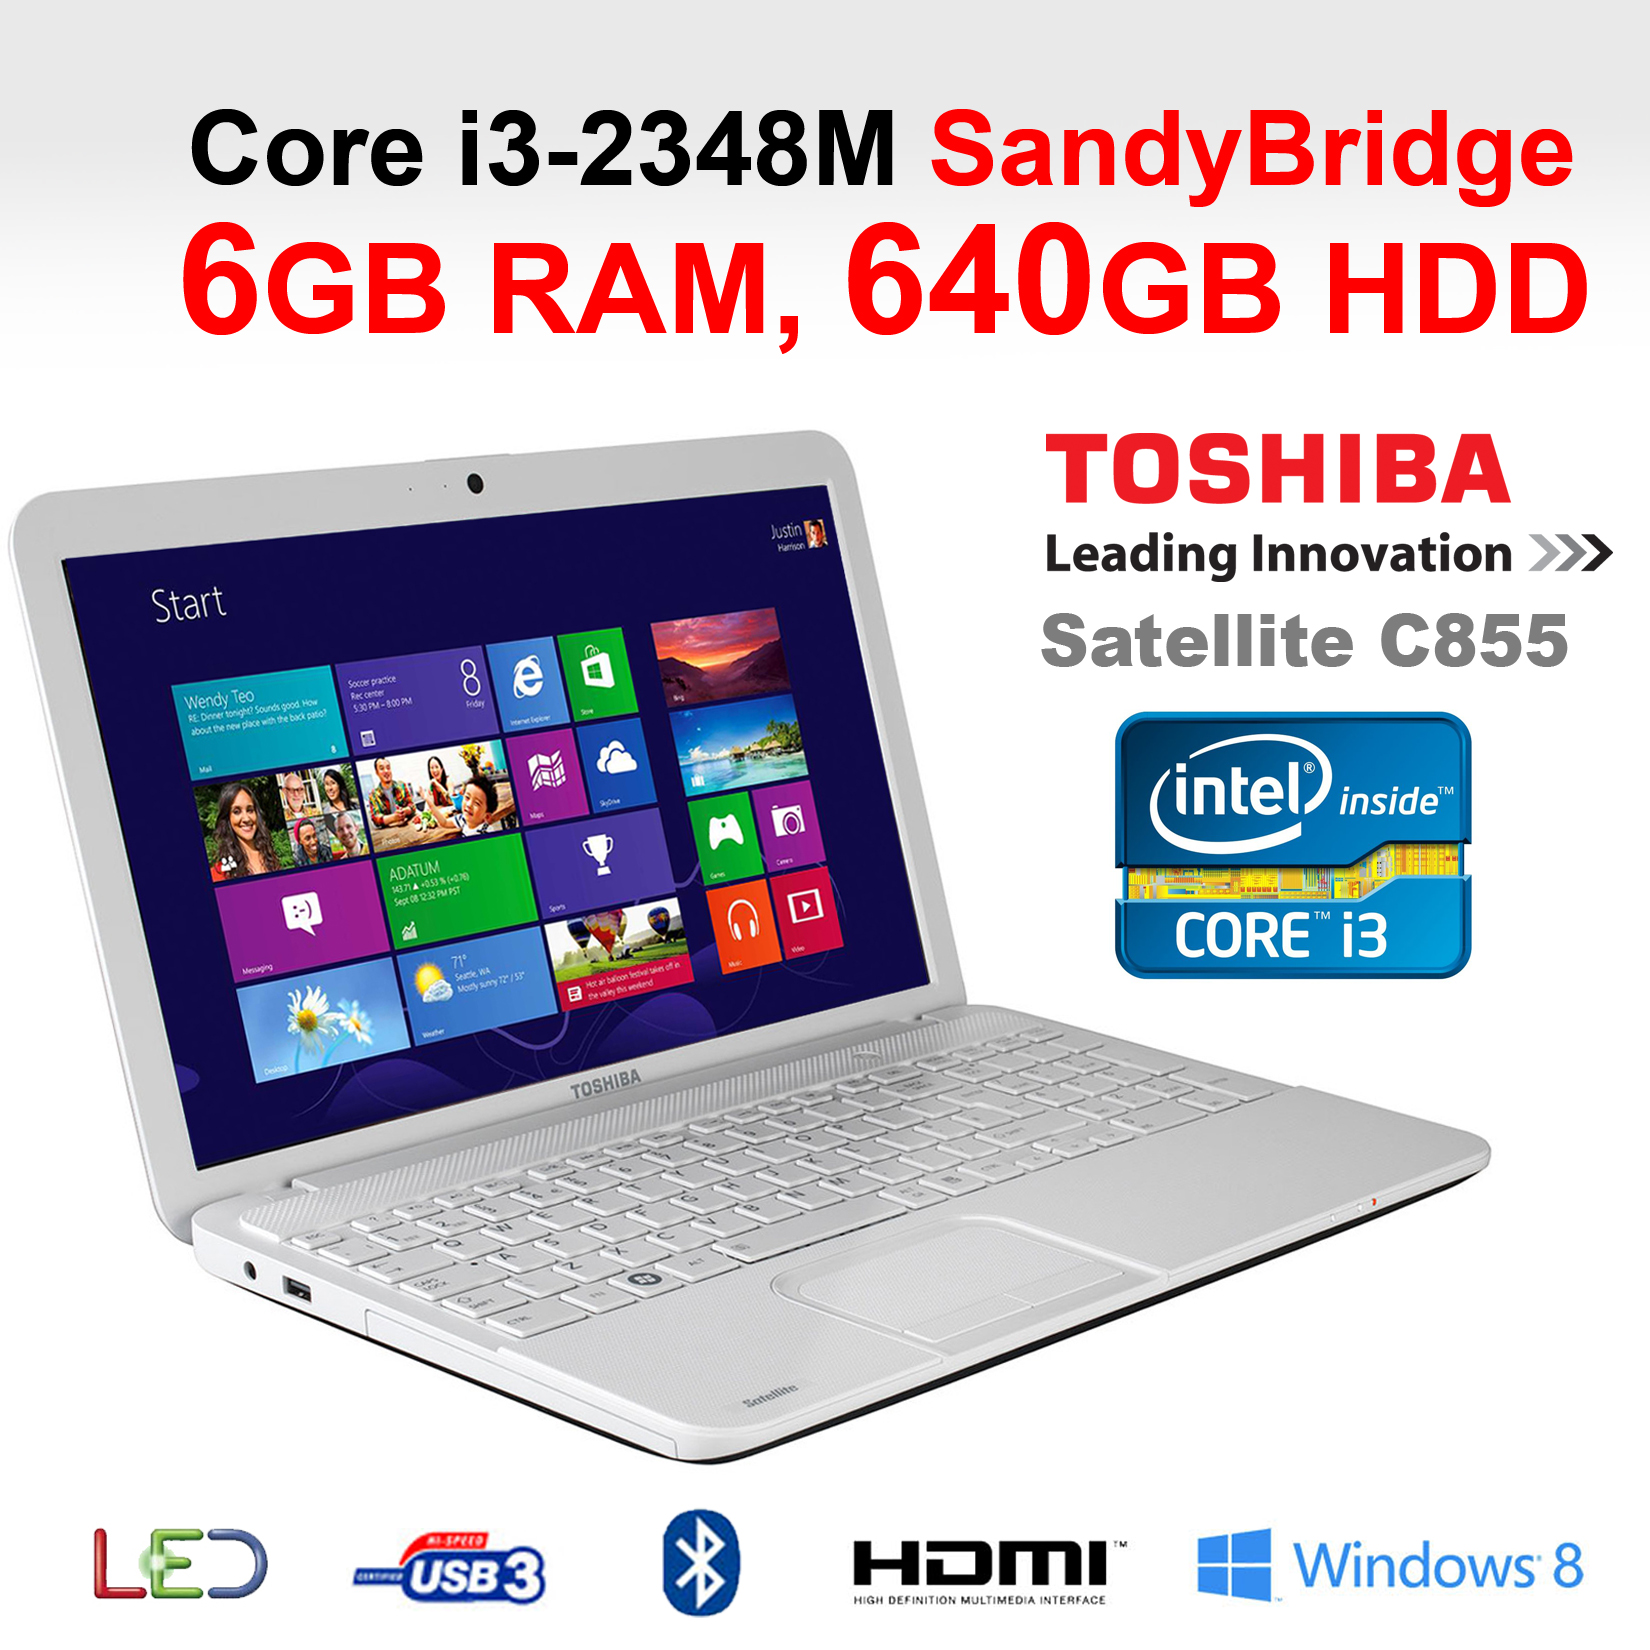 toshiba c855 2d1 white laptop core i3 laptop intel 2348m. Black Bedroom Furniture Sets. Home Design Ideas